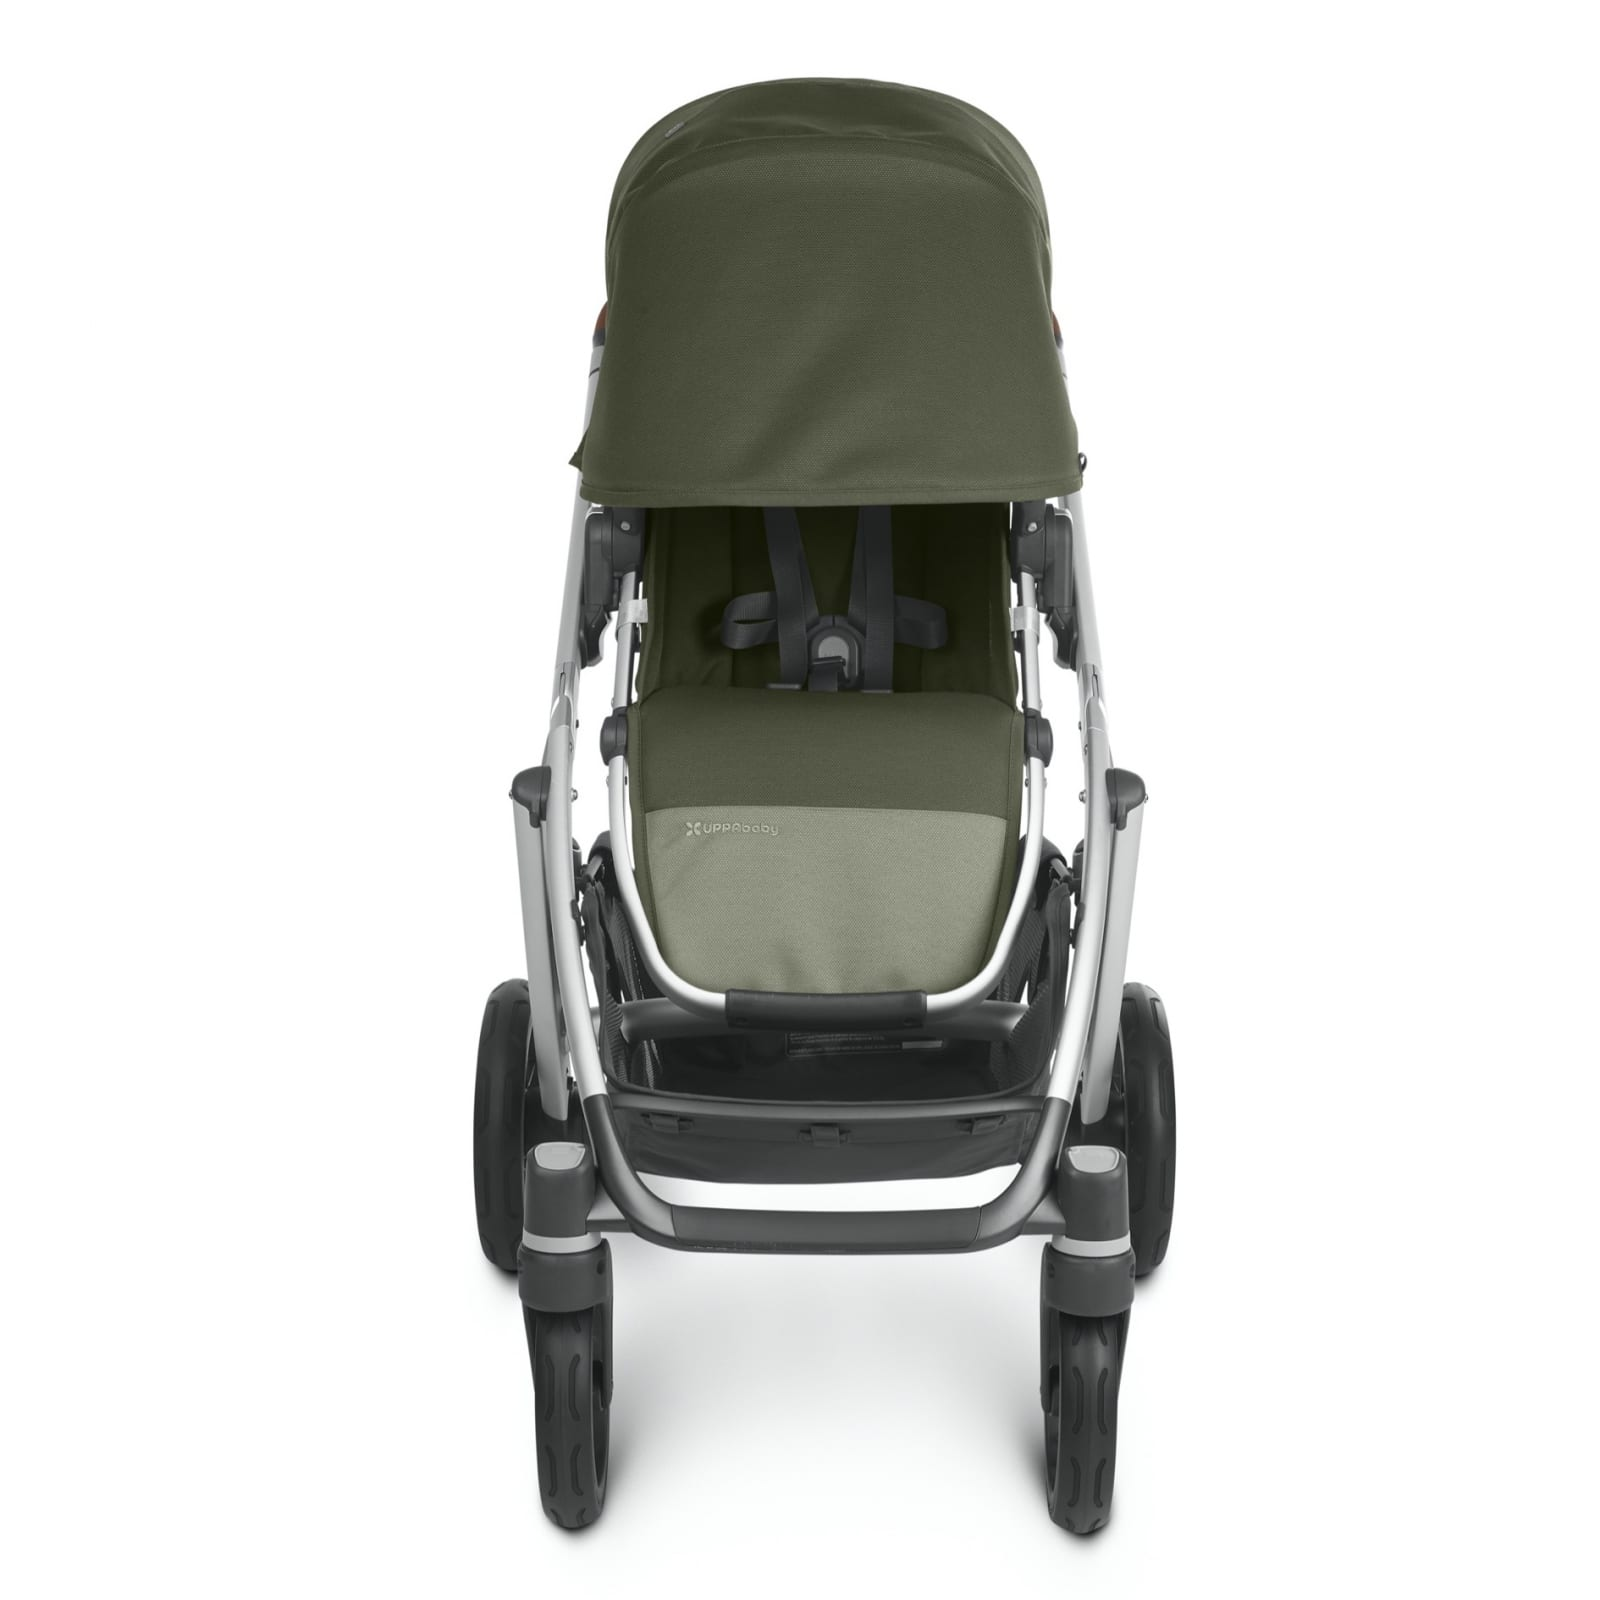 UPPABaby VISTA 2 Stroller & Carry Cot  – HAZEL product image